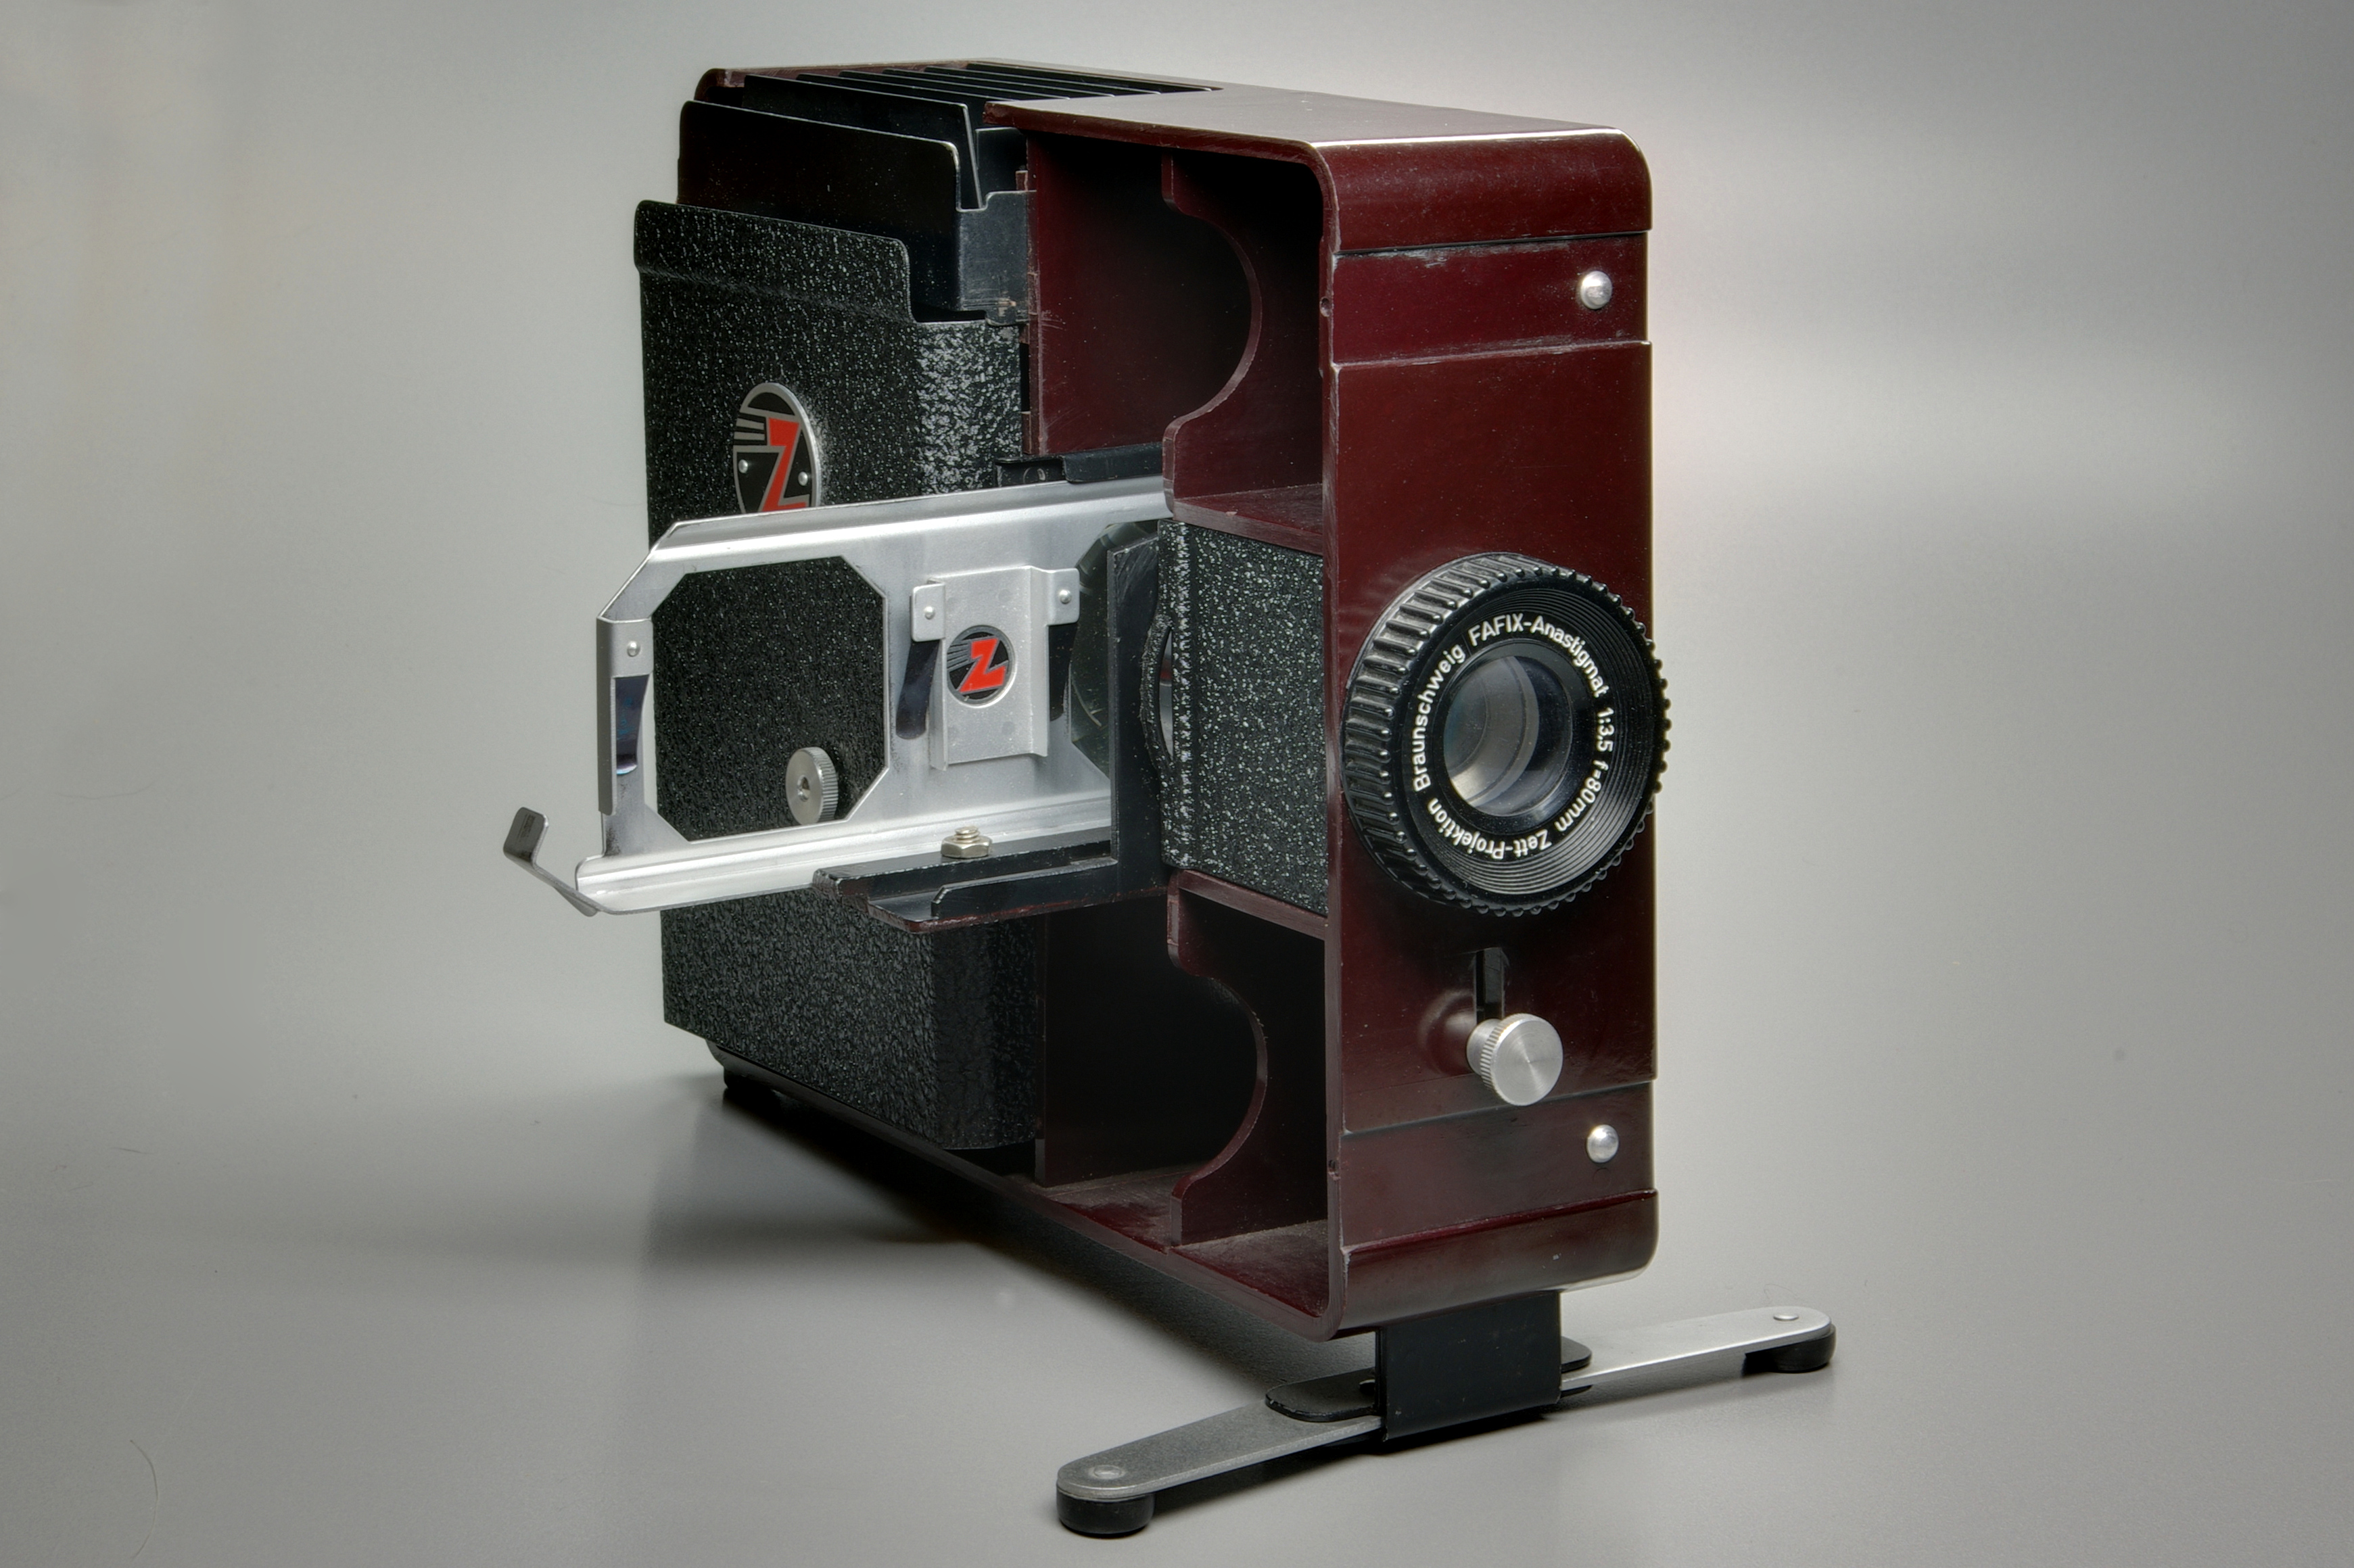 Color printing vs black and white cost - A Slide Projector Showing The Lens And A Typical Double Slide Carrier